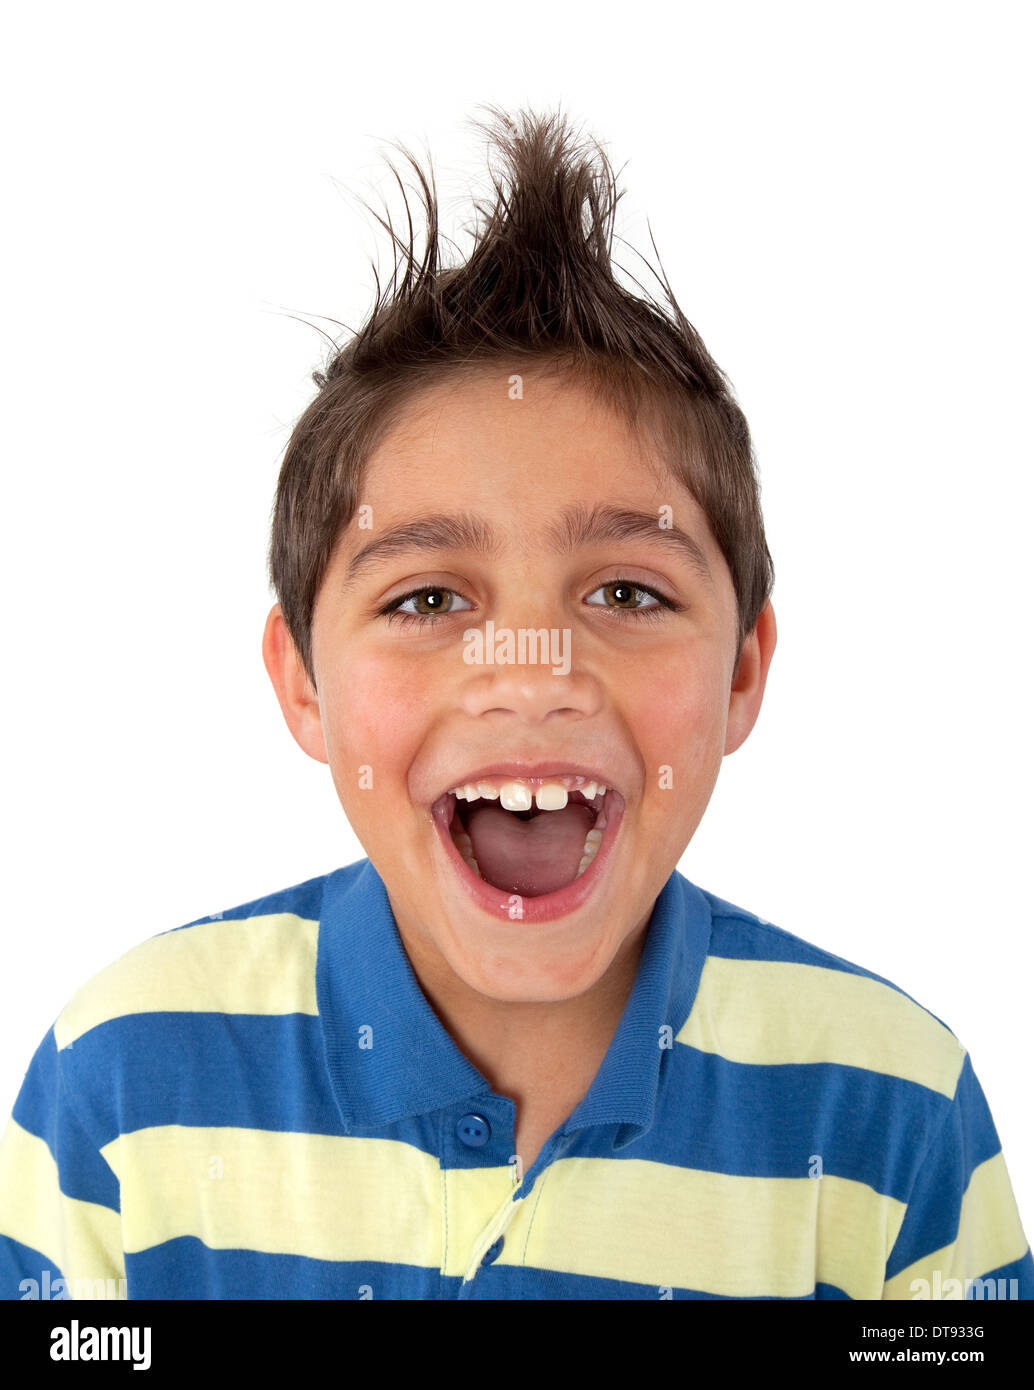 young boy screaming stock photo 66582868 alamy